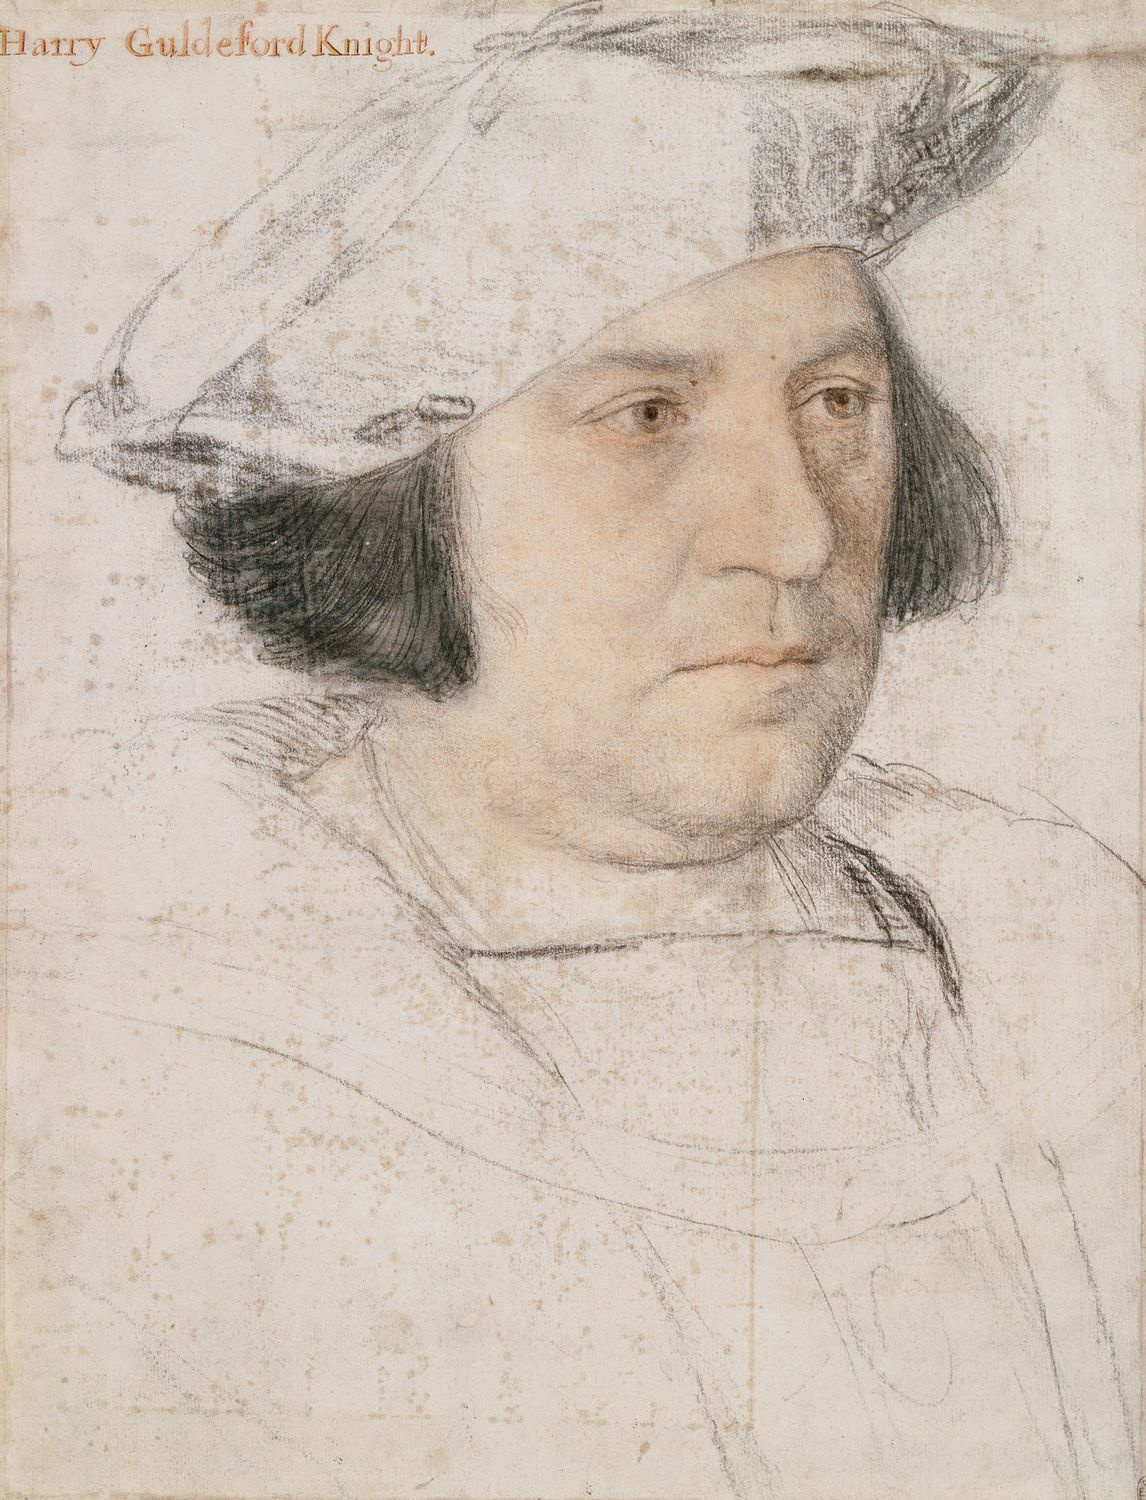 Portrait Study of Sir Henry Guildford. 1527